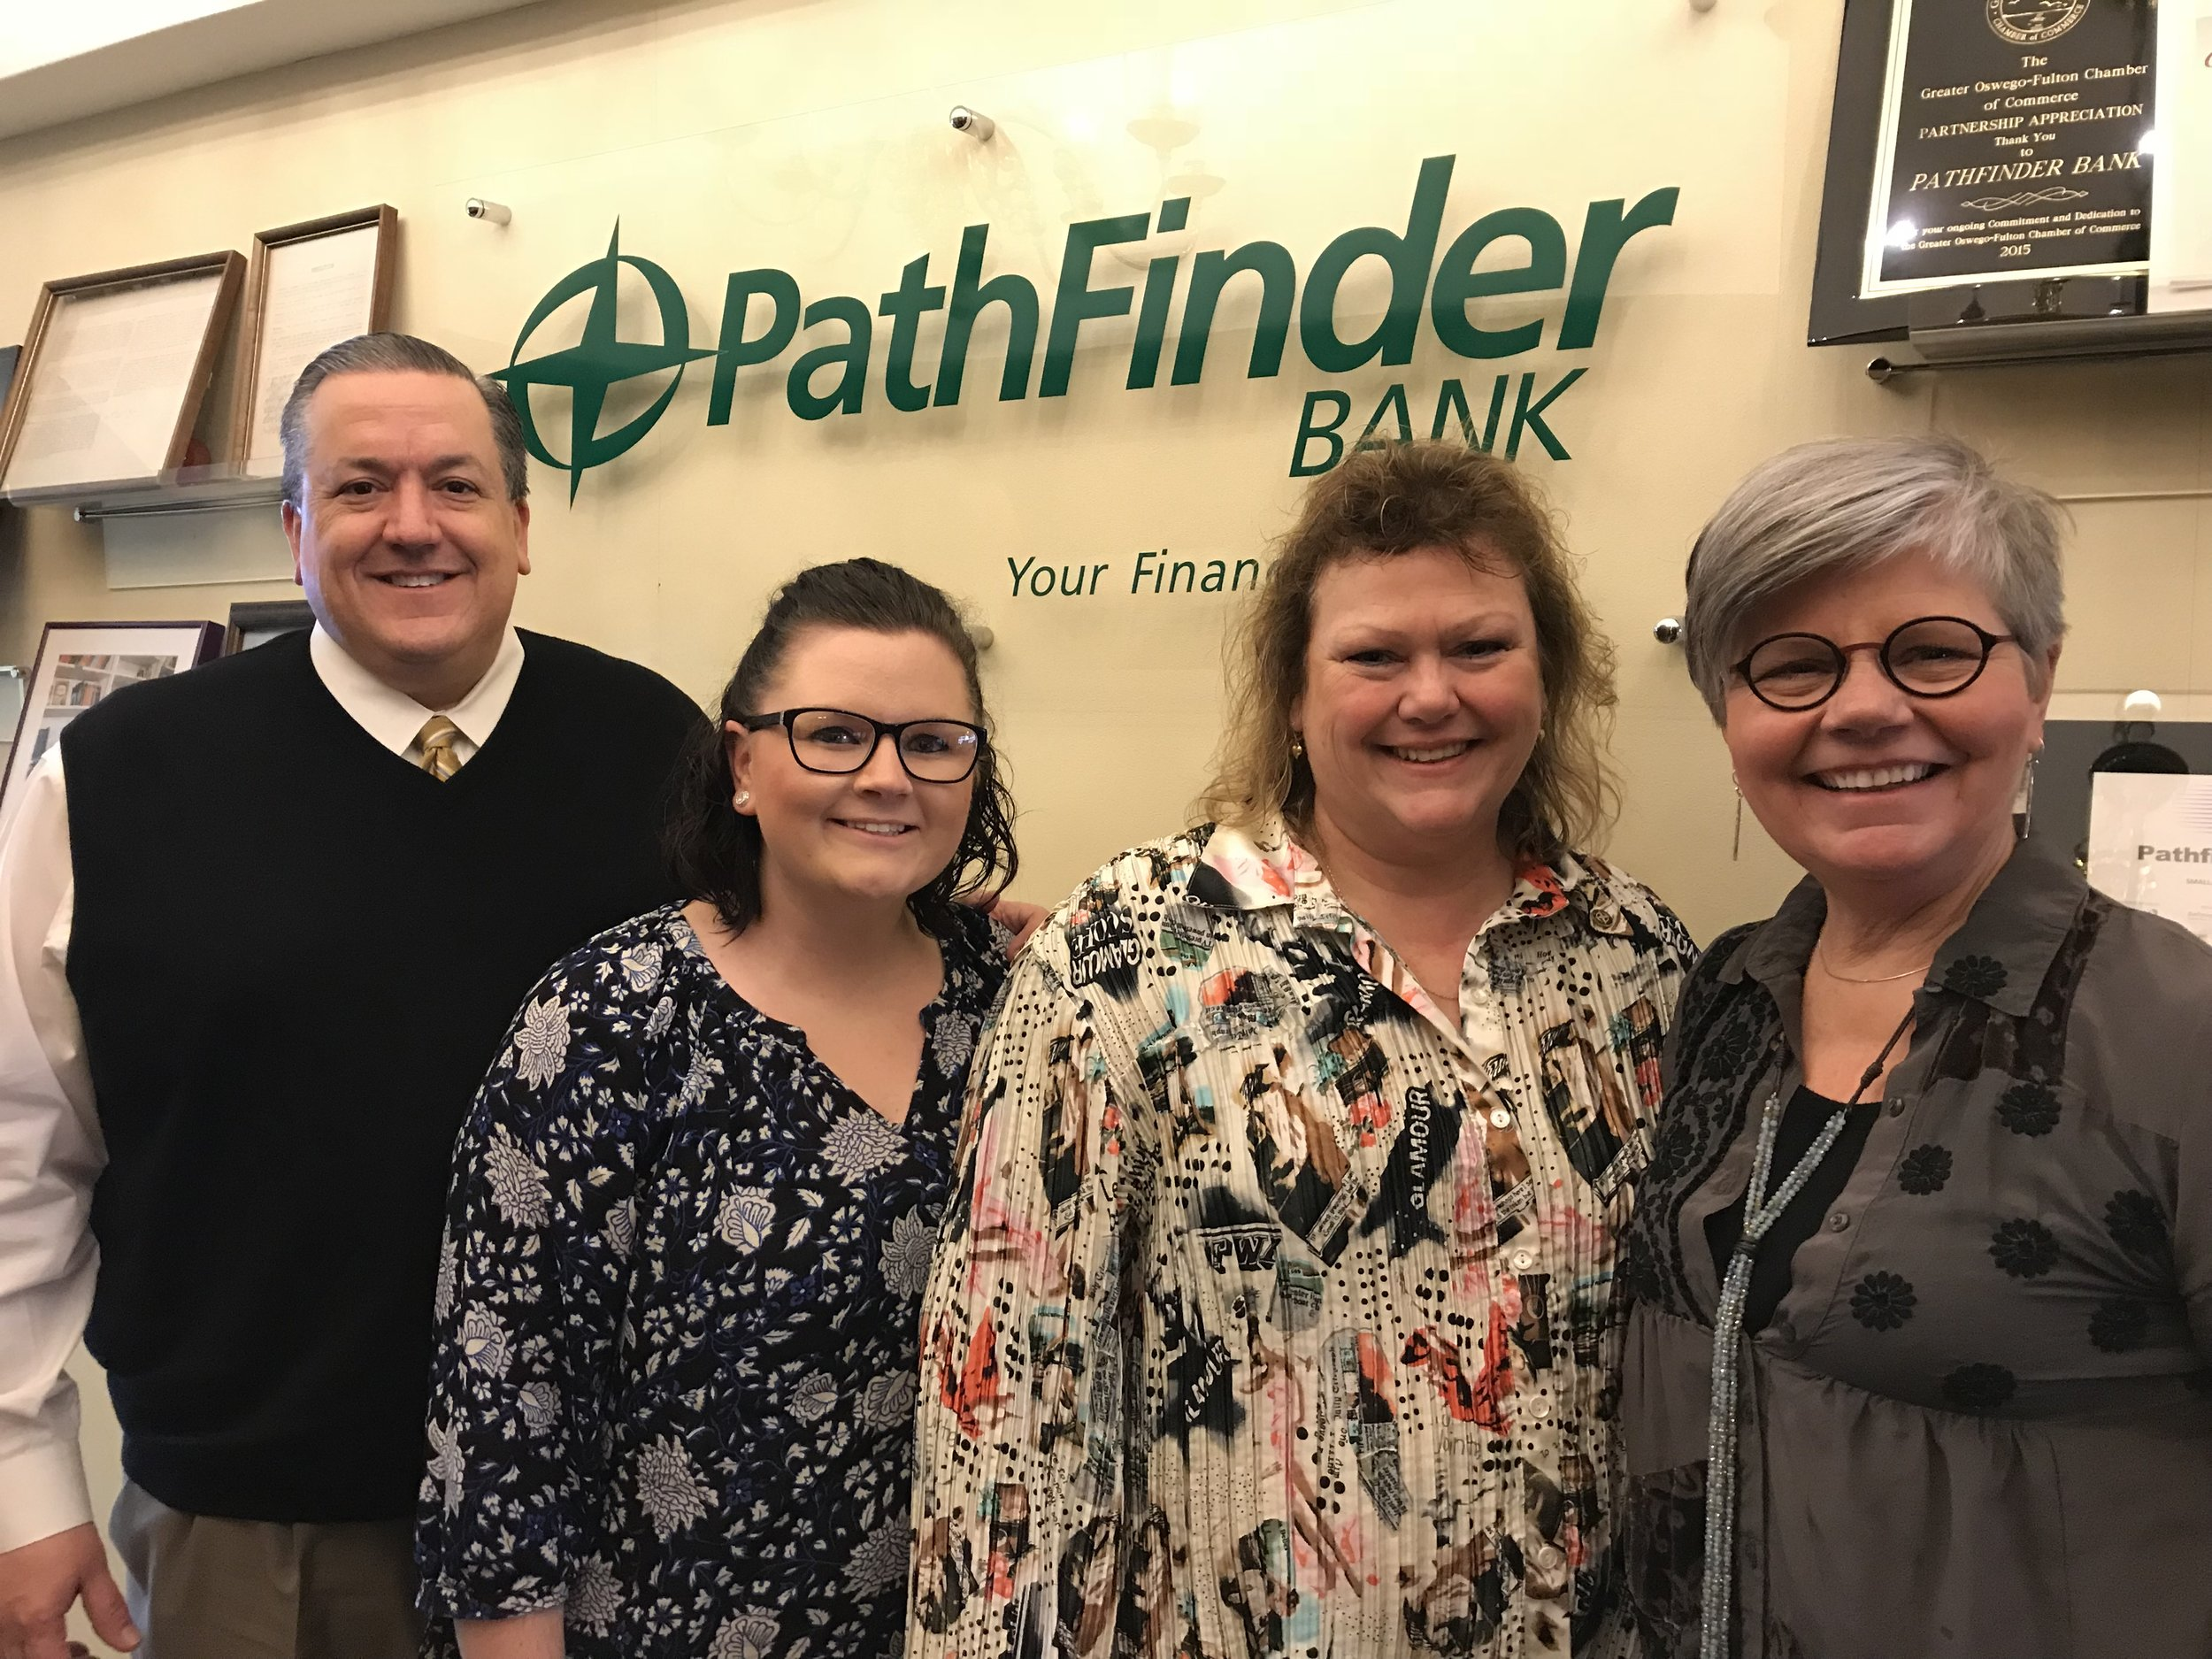 Pictured in this photo is James Dowd-EVP Chief Operating Office & Chief Financial Officer, Jennifer Whalen, Reyne Pierce and Linda Eagan